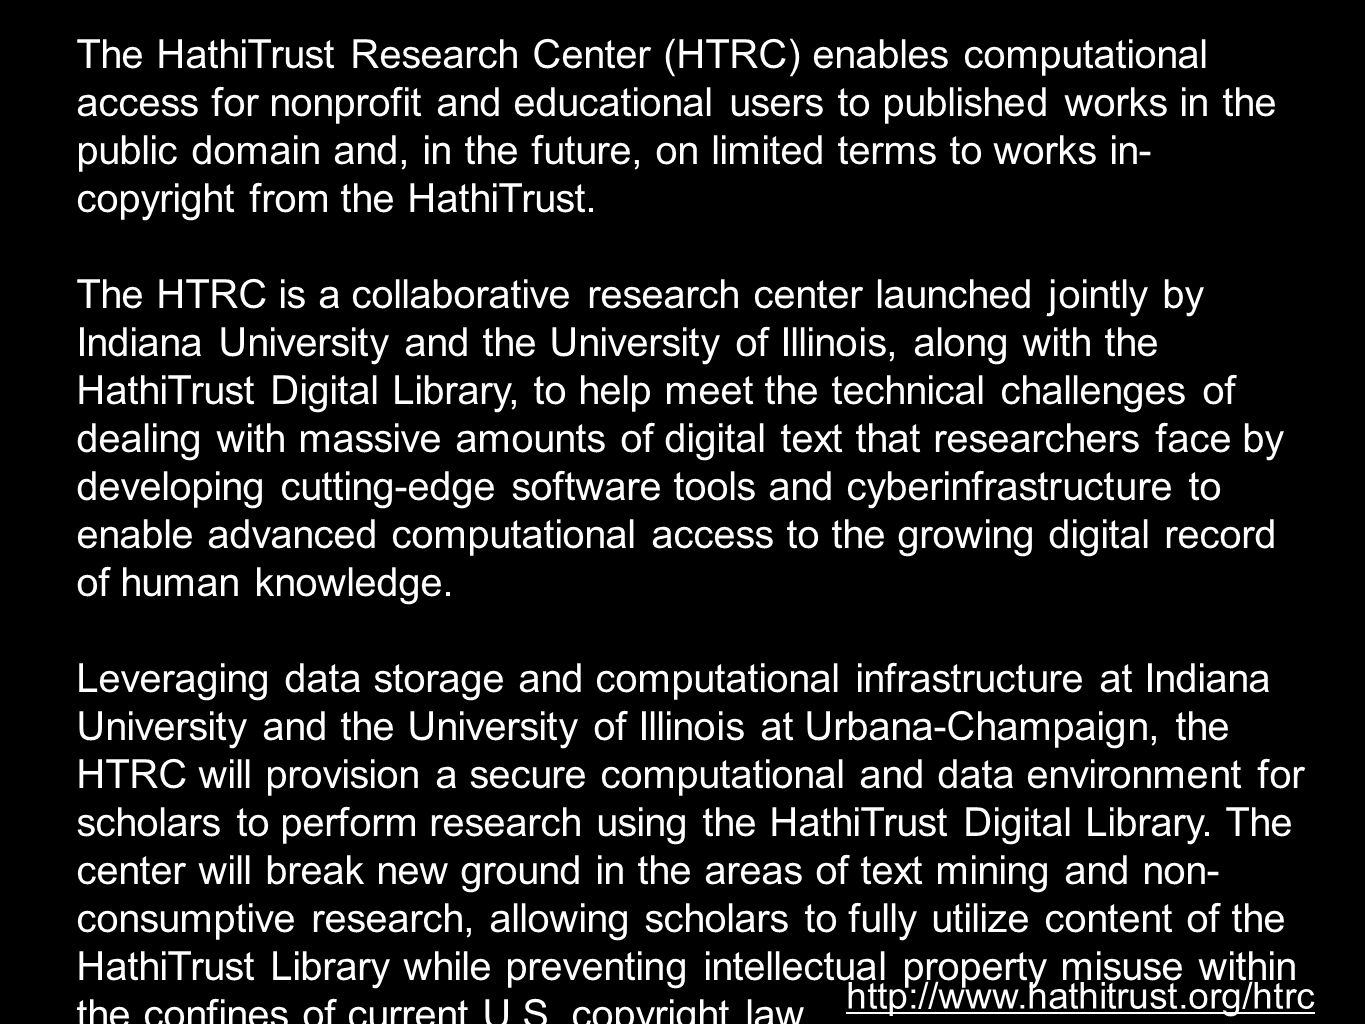 The HathiTrust Research Center (HTRC) enables computational access for nonprofit and educational users to published works in the public domain and, in